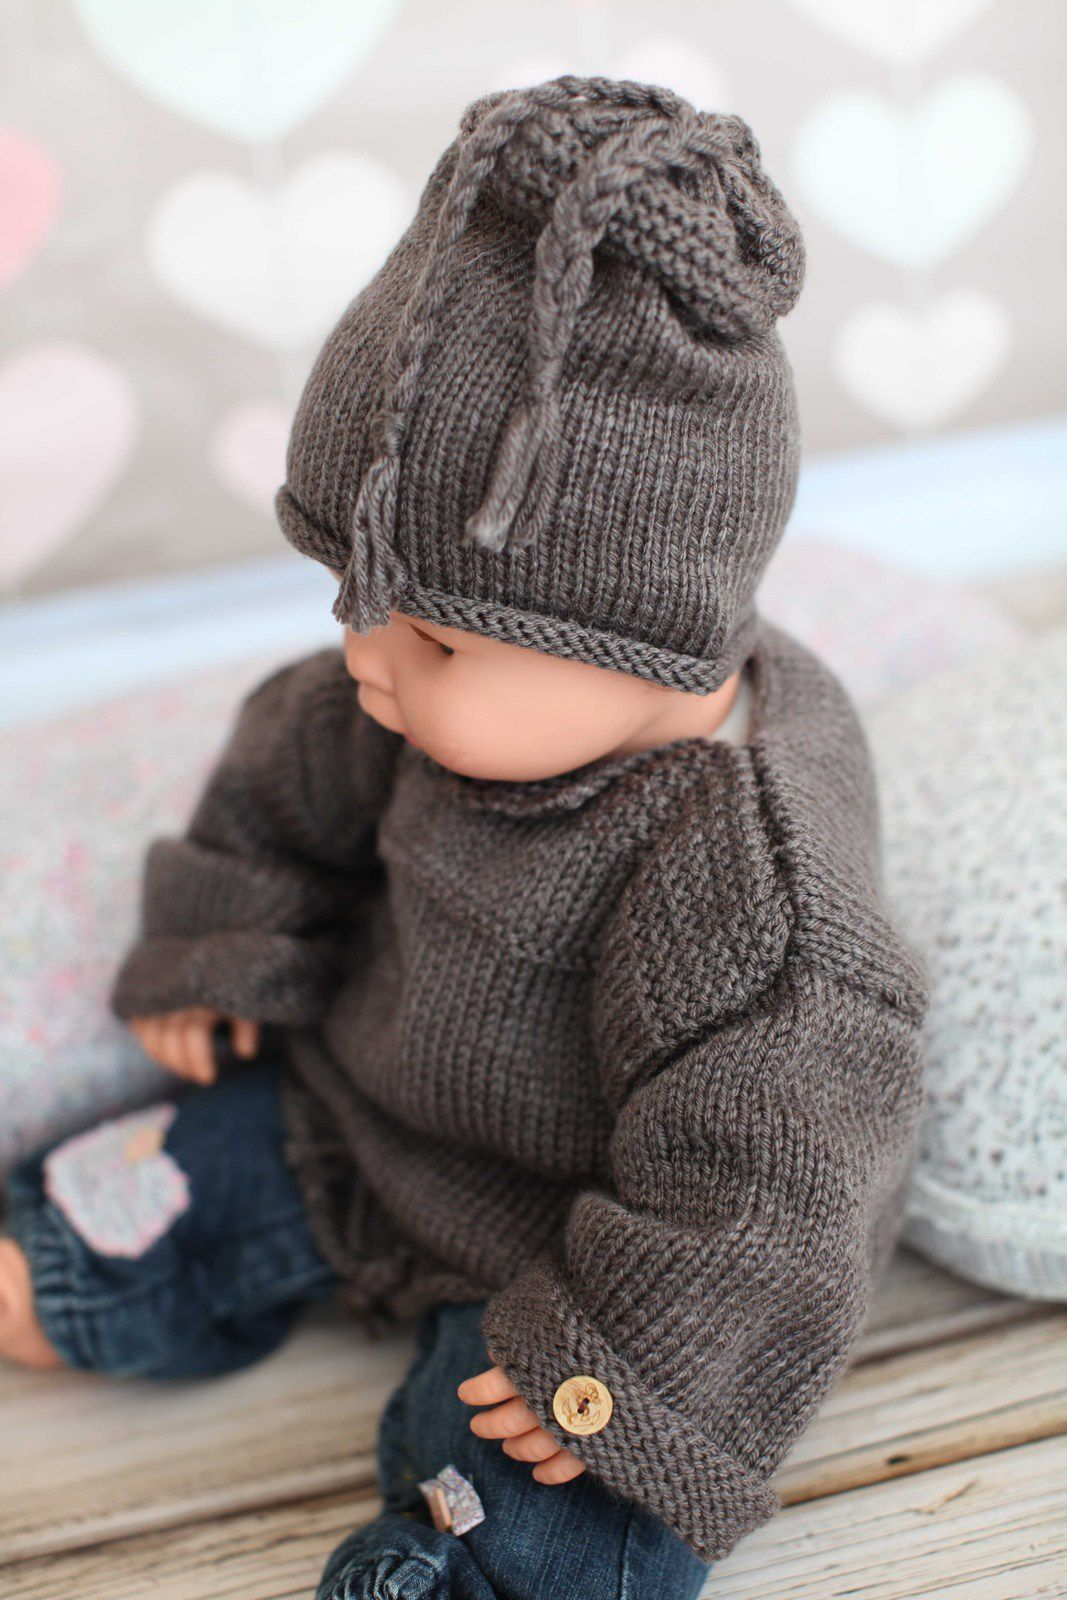 Handmade whool sweater and hat for a 18 months baby